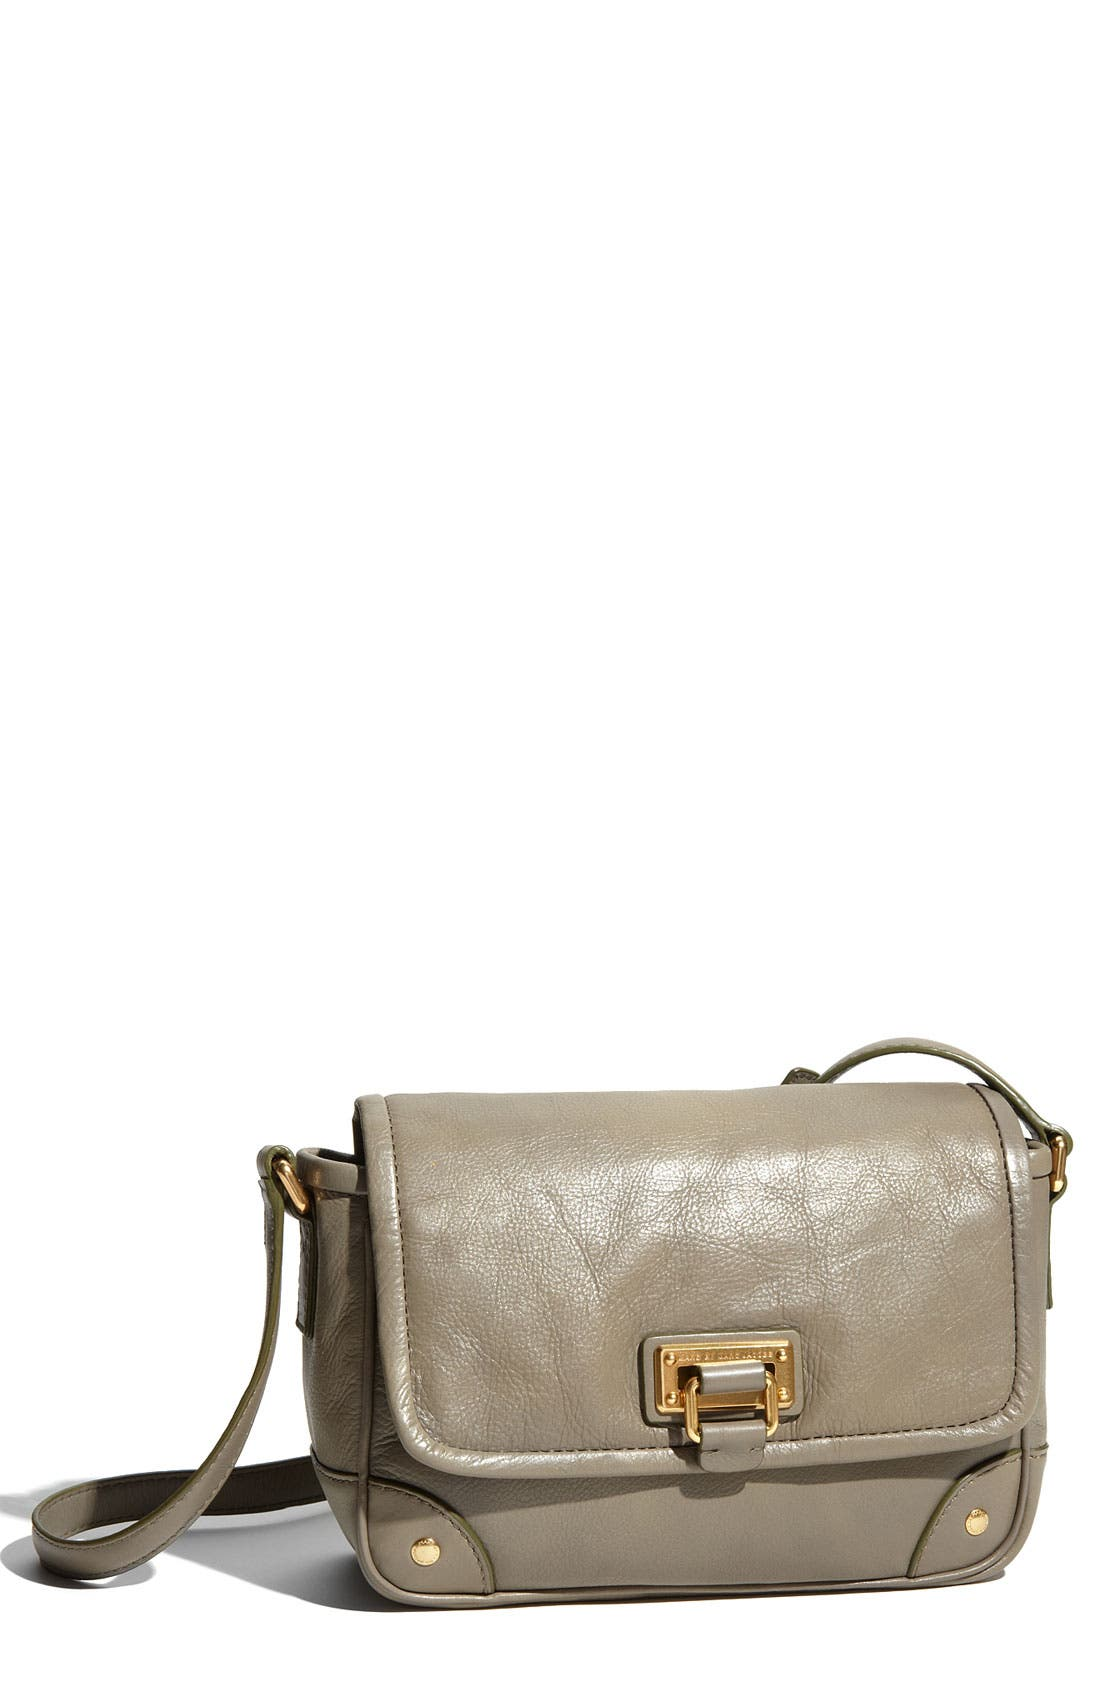 Main Image - MARC BY MARC JACOBS 'Lady Pouchette' Crossbody Bag